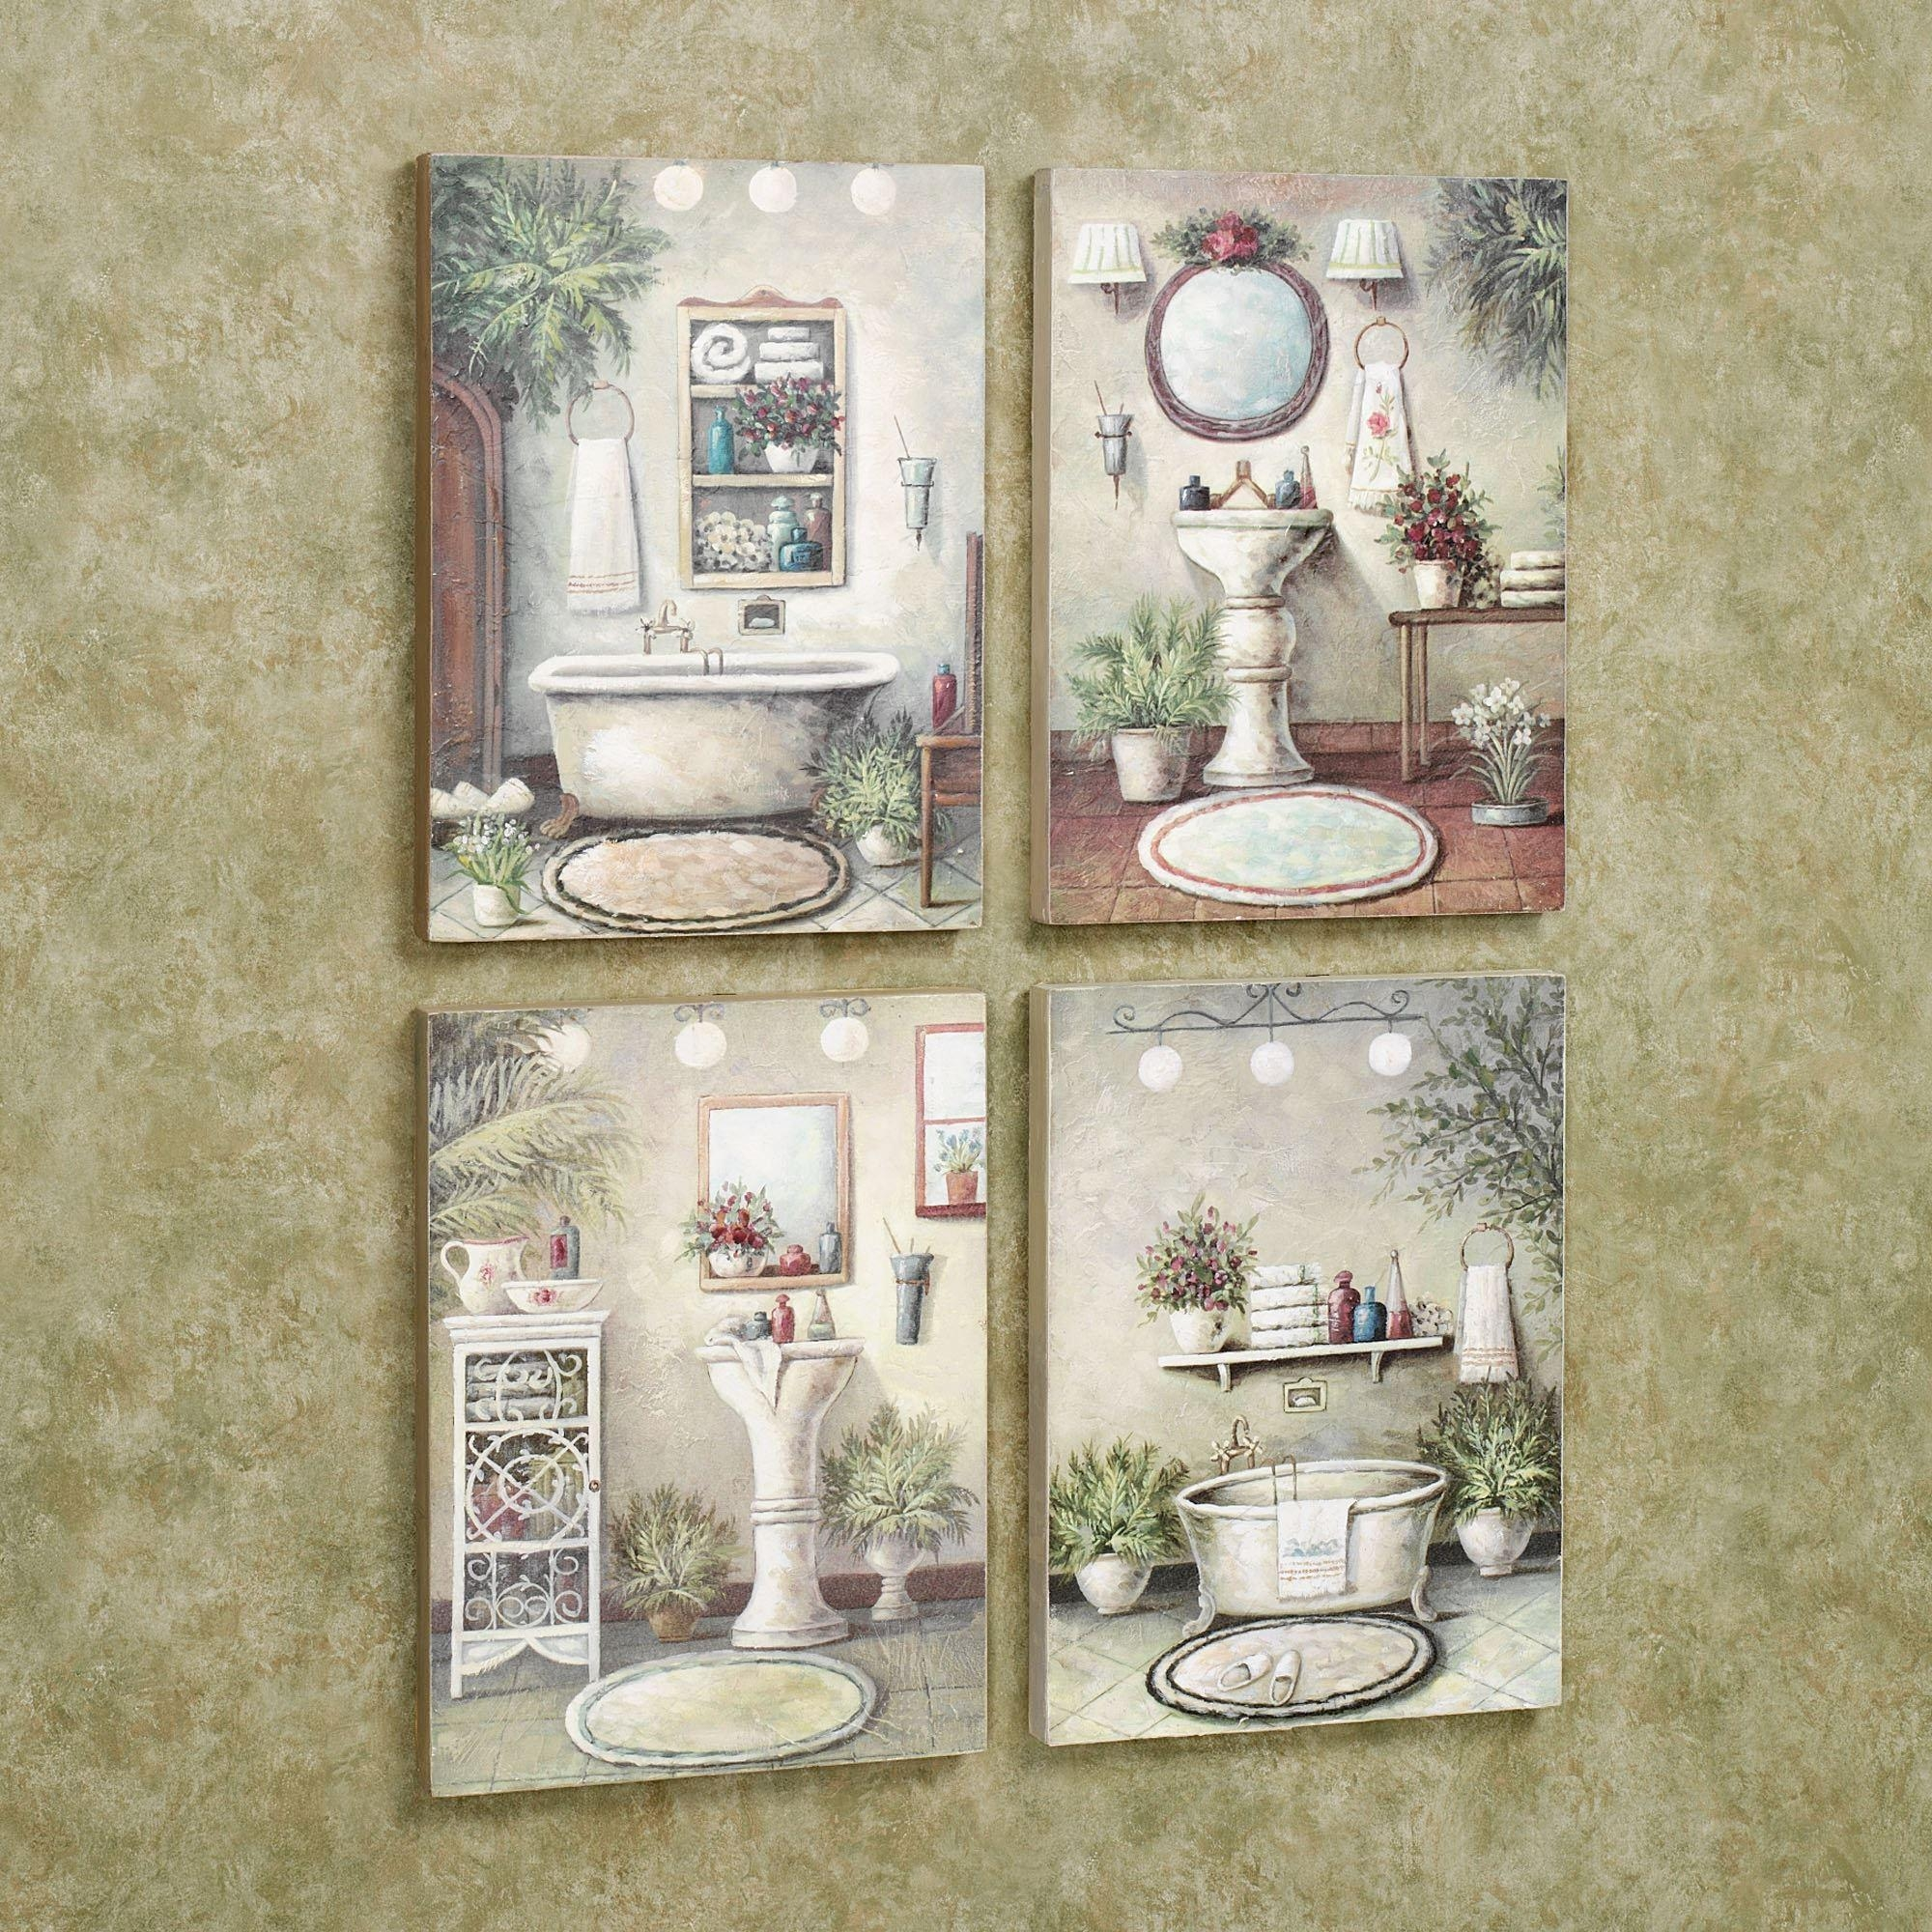 Bathroom Bliss Wooden Wall Art Plaque Set In Shower Room Wall Art (Image 2 of 20)